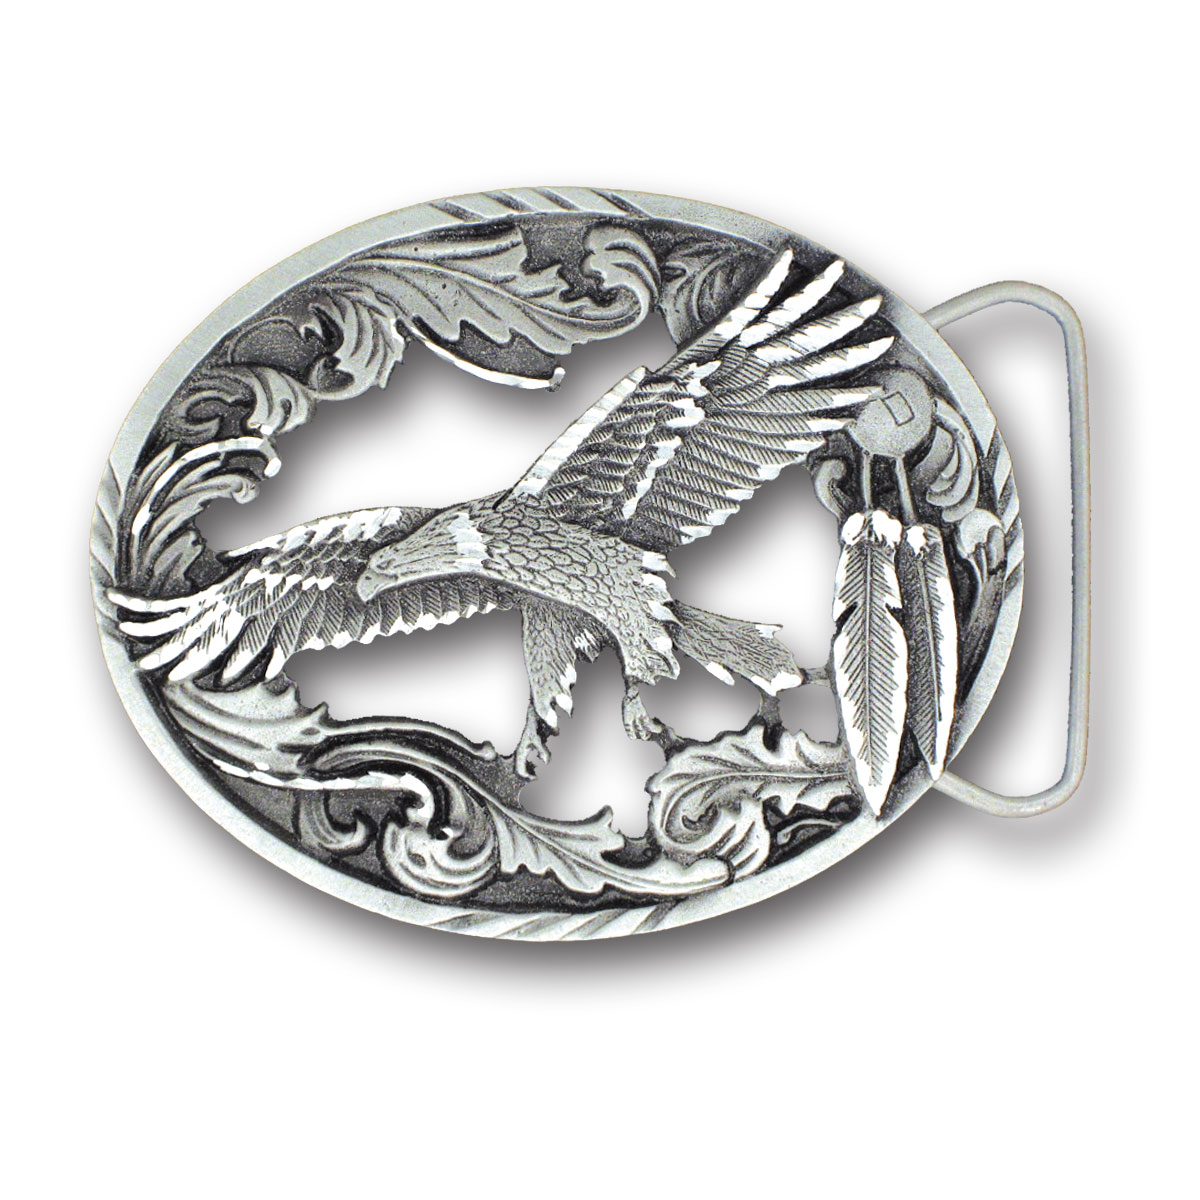 Belt Buckle - Eagle with Feathers - This finely sculpted and diamond cut and cutout  belt buckle contains exceptional 3D detailing. Siskiyou's unique buckle designs often become collector's items and are unequaled with the best craftsmanship.